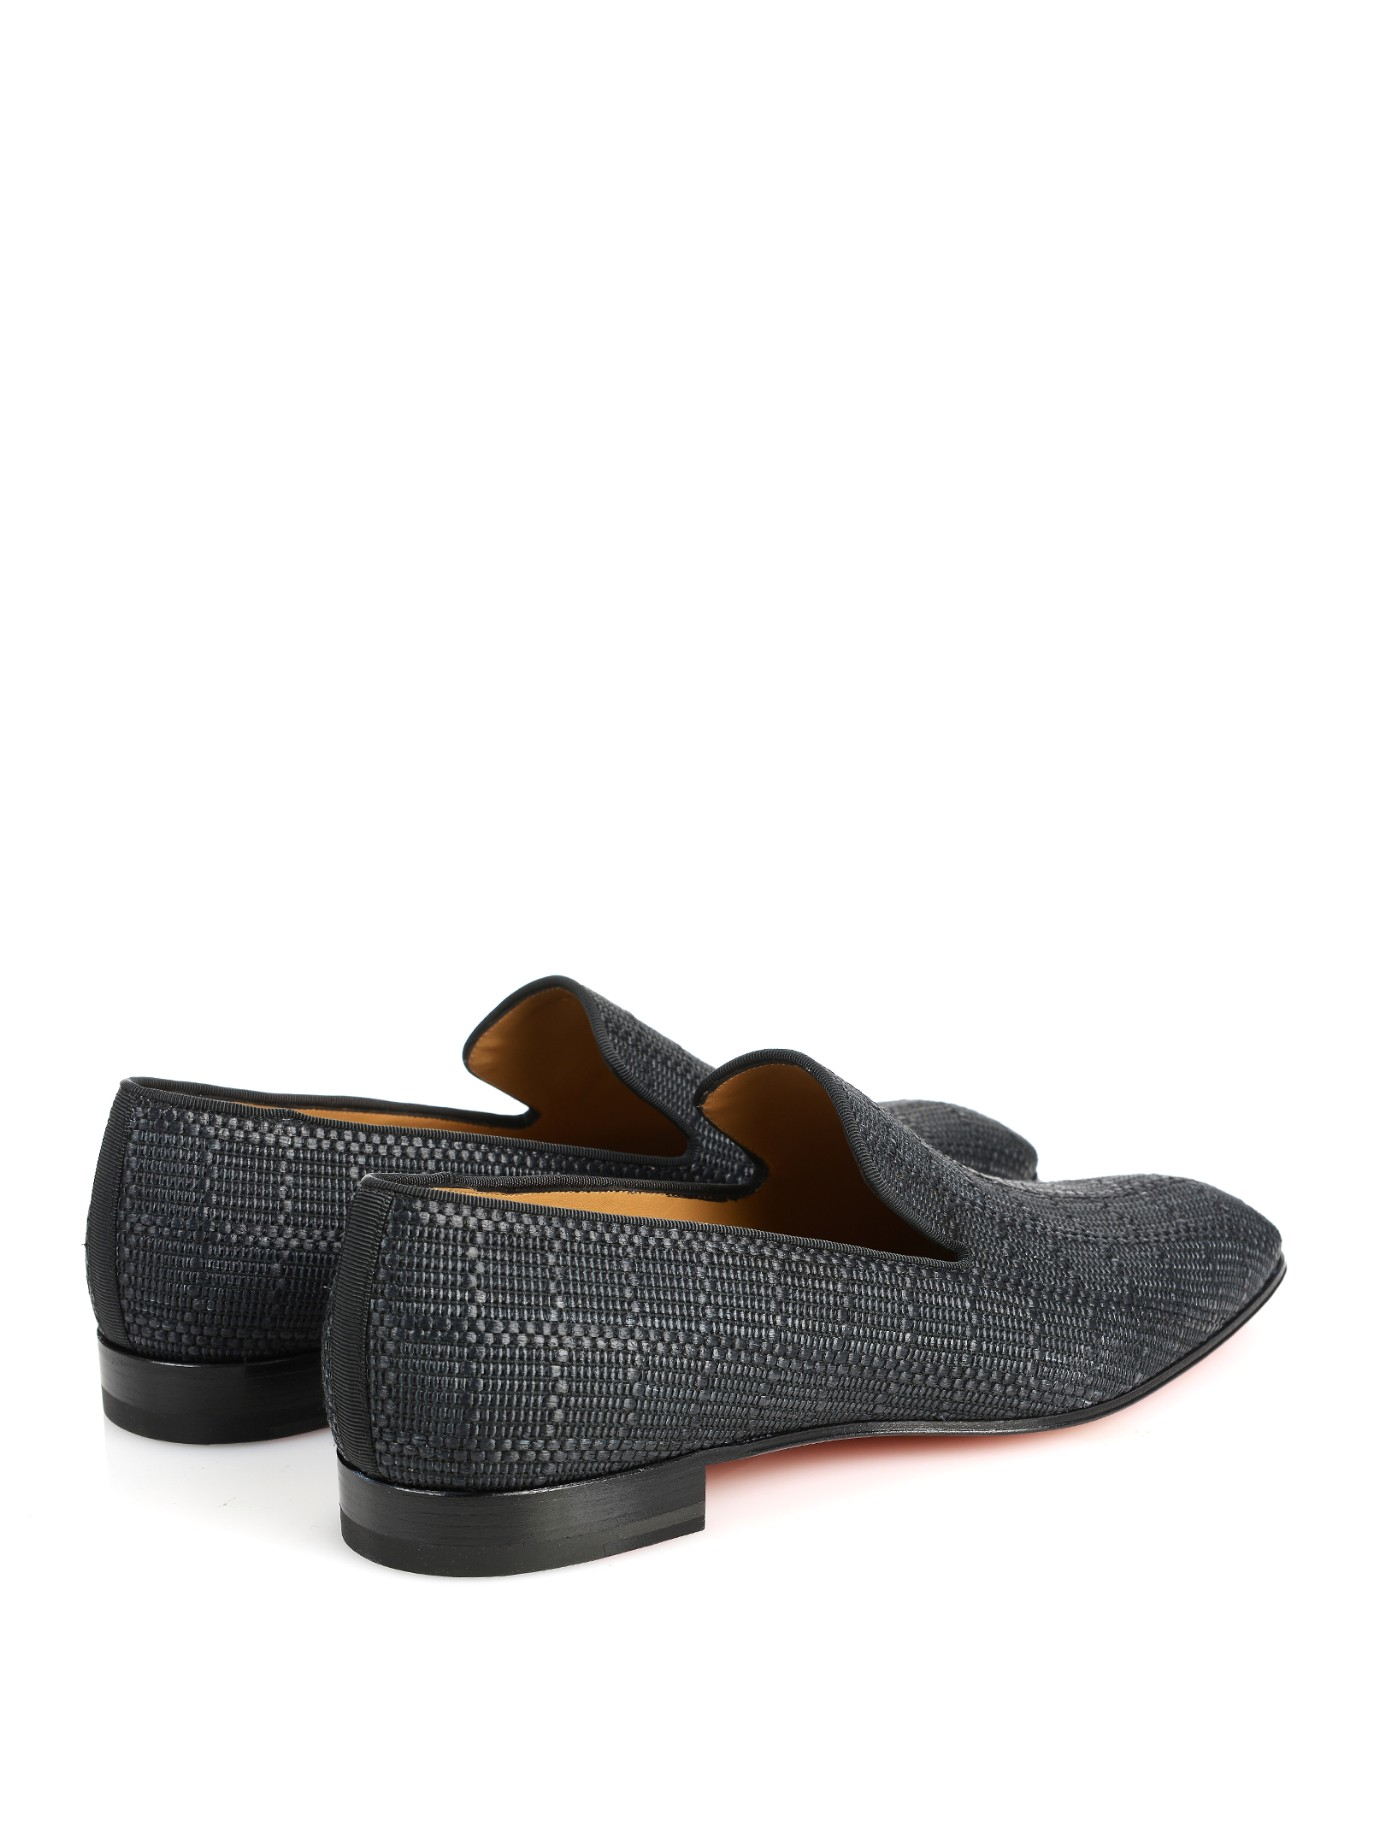 51795b26c2b3 louis vuitton spiked sneakers - Christian louboutin Dandelion Woven Loafers  in Gray for Men (BLACK. Christian louboutin Laperouza Patent Crest ...